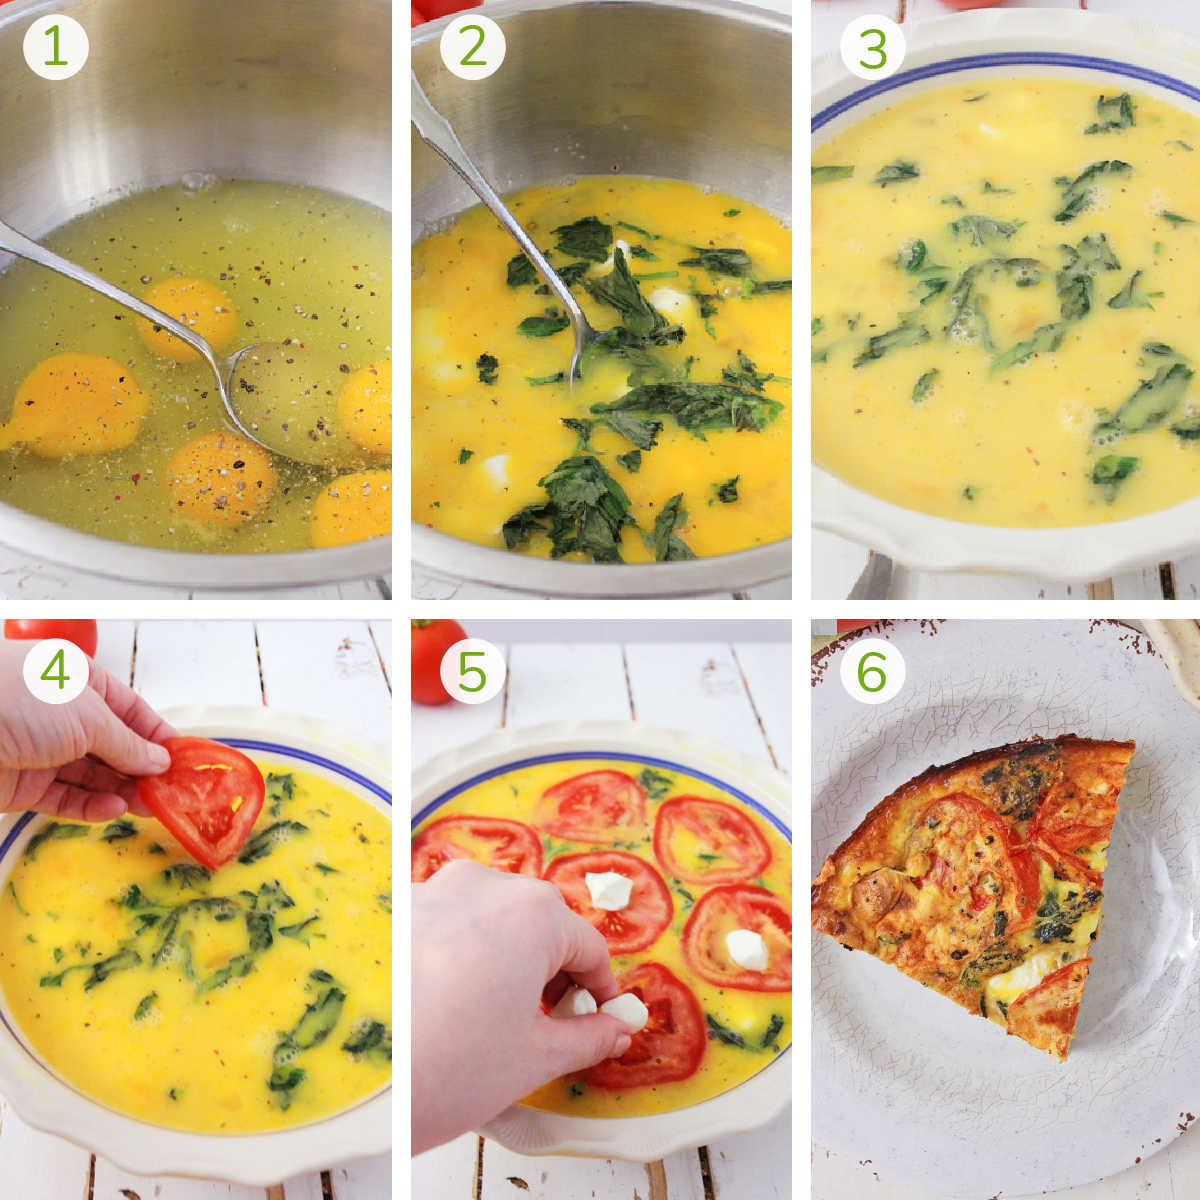 process photos showing mixing the eggs, adding to a dish, layering tomatoes and mozzarella and baking it.